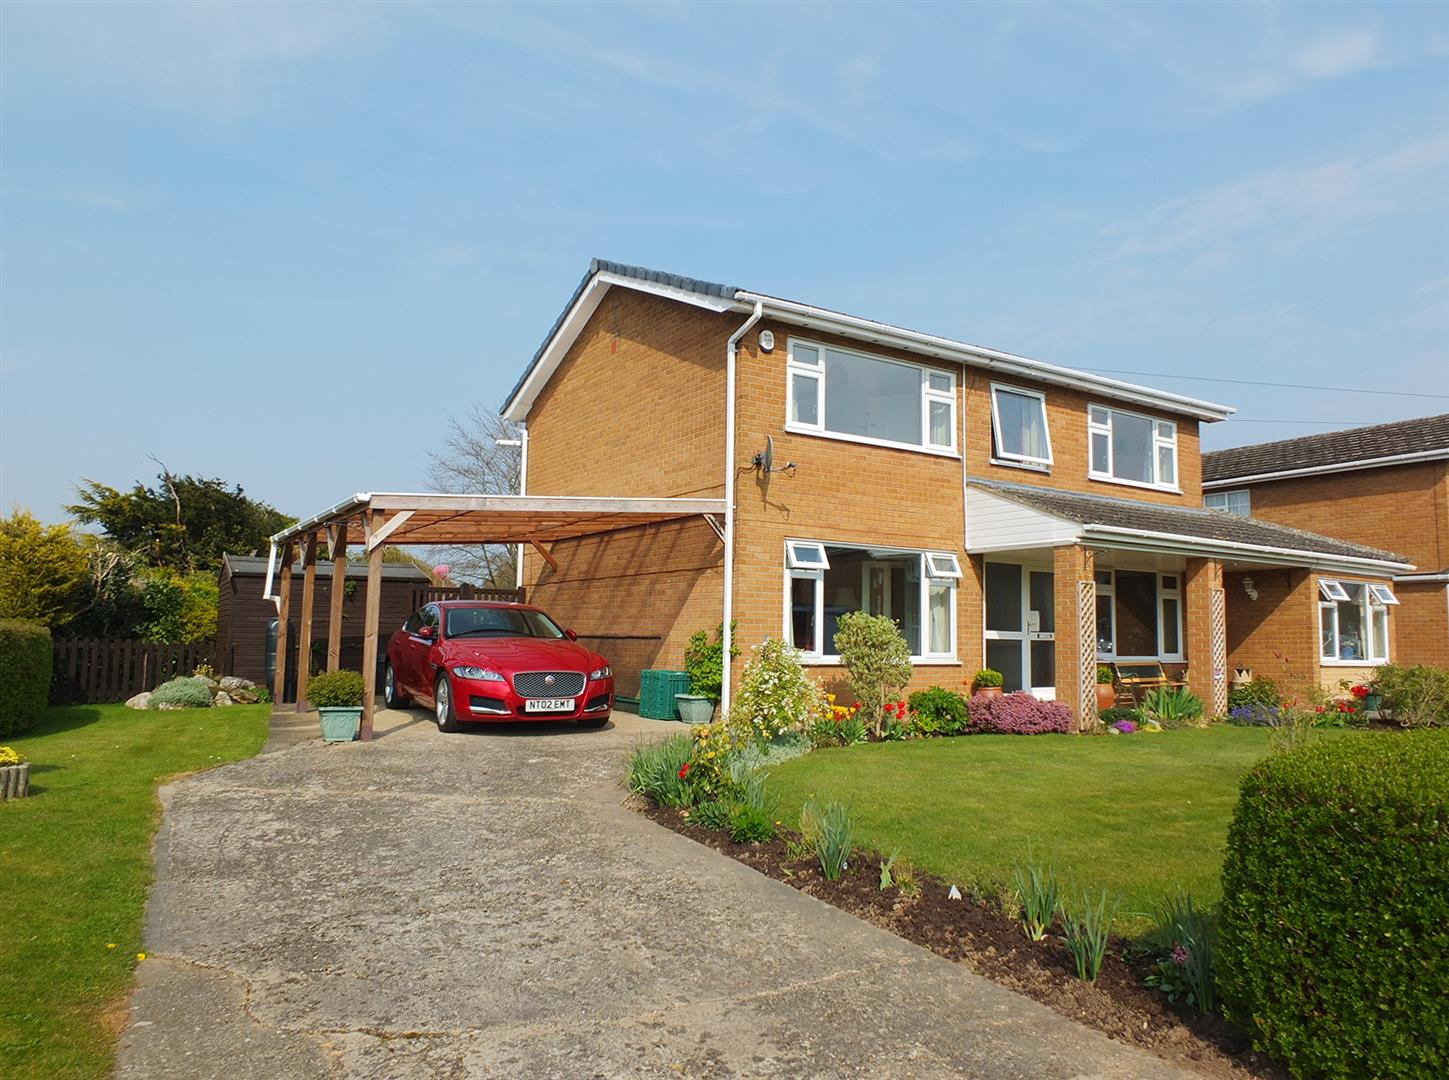 4 bed house for sale in Lancaster Drive, Long Sutton Spalding - Property Image 1